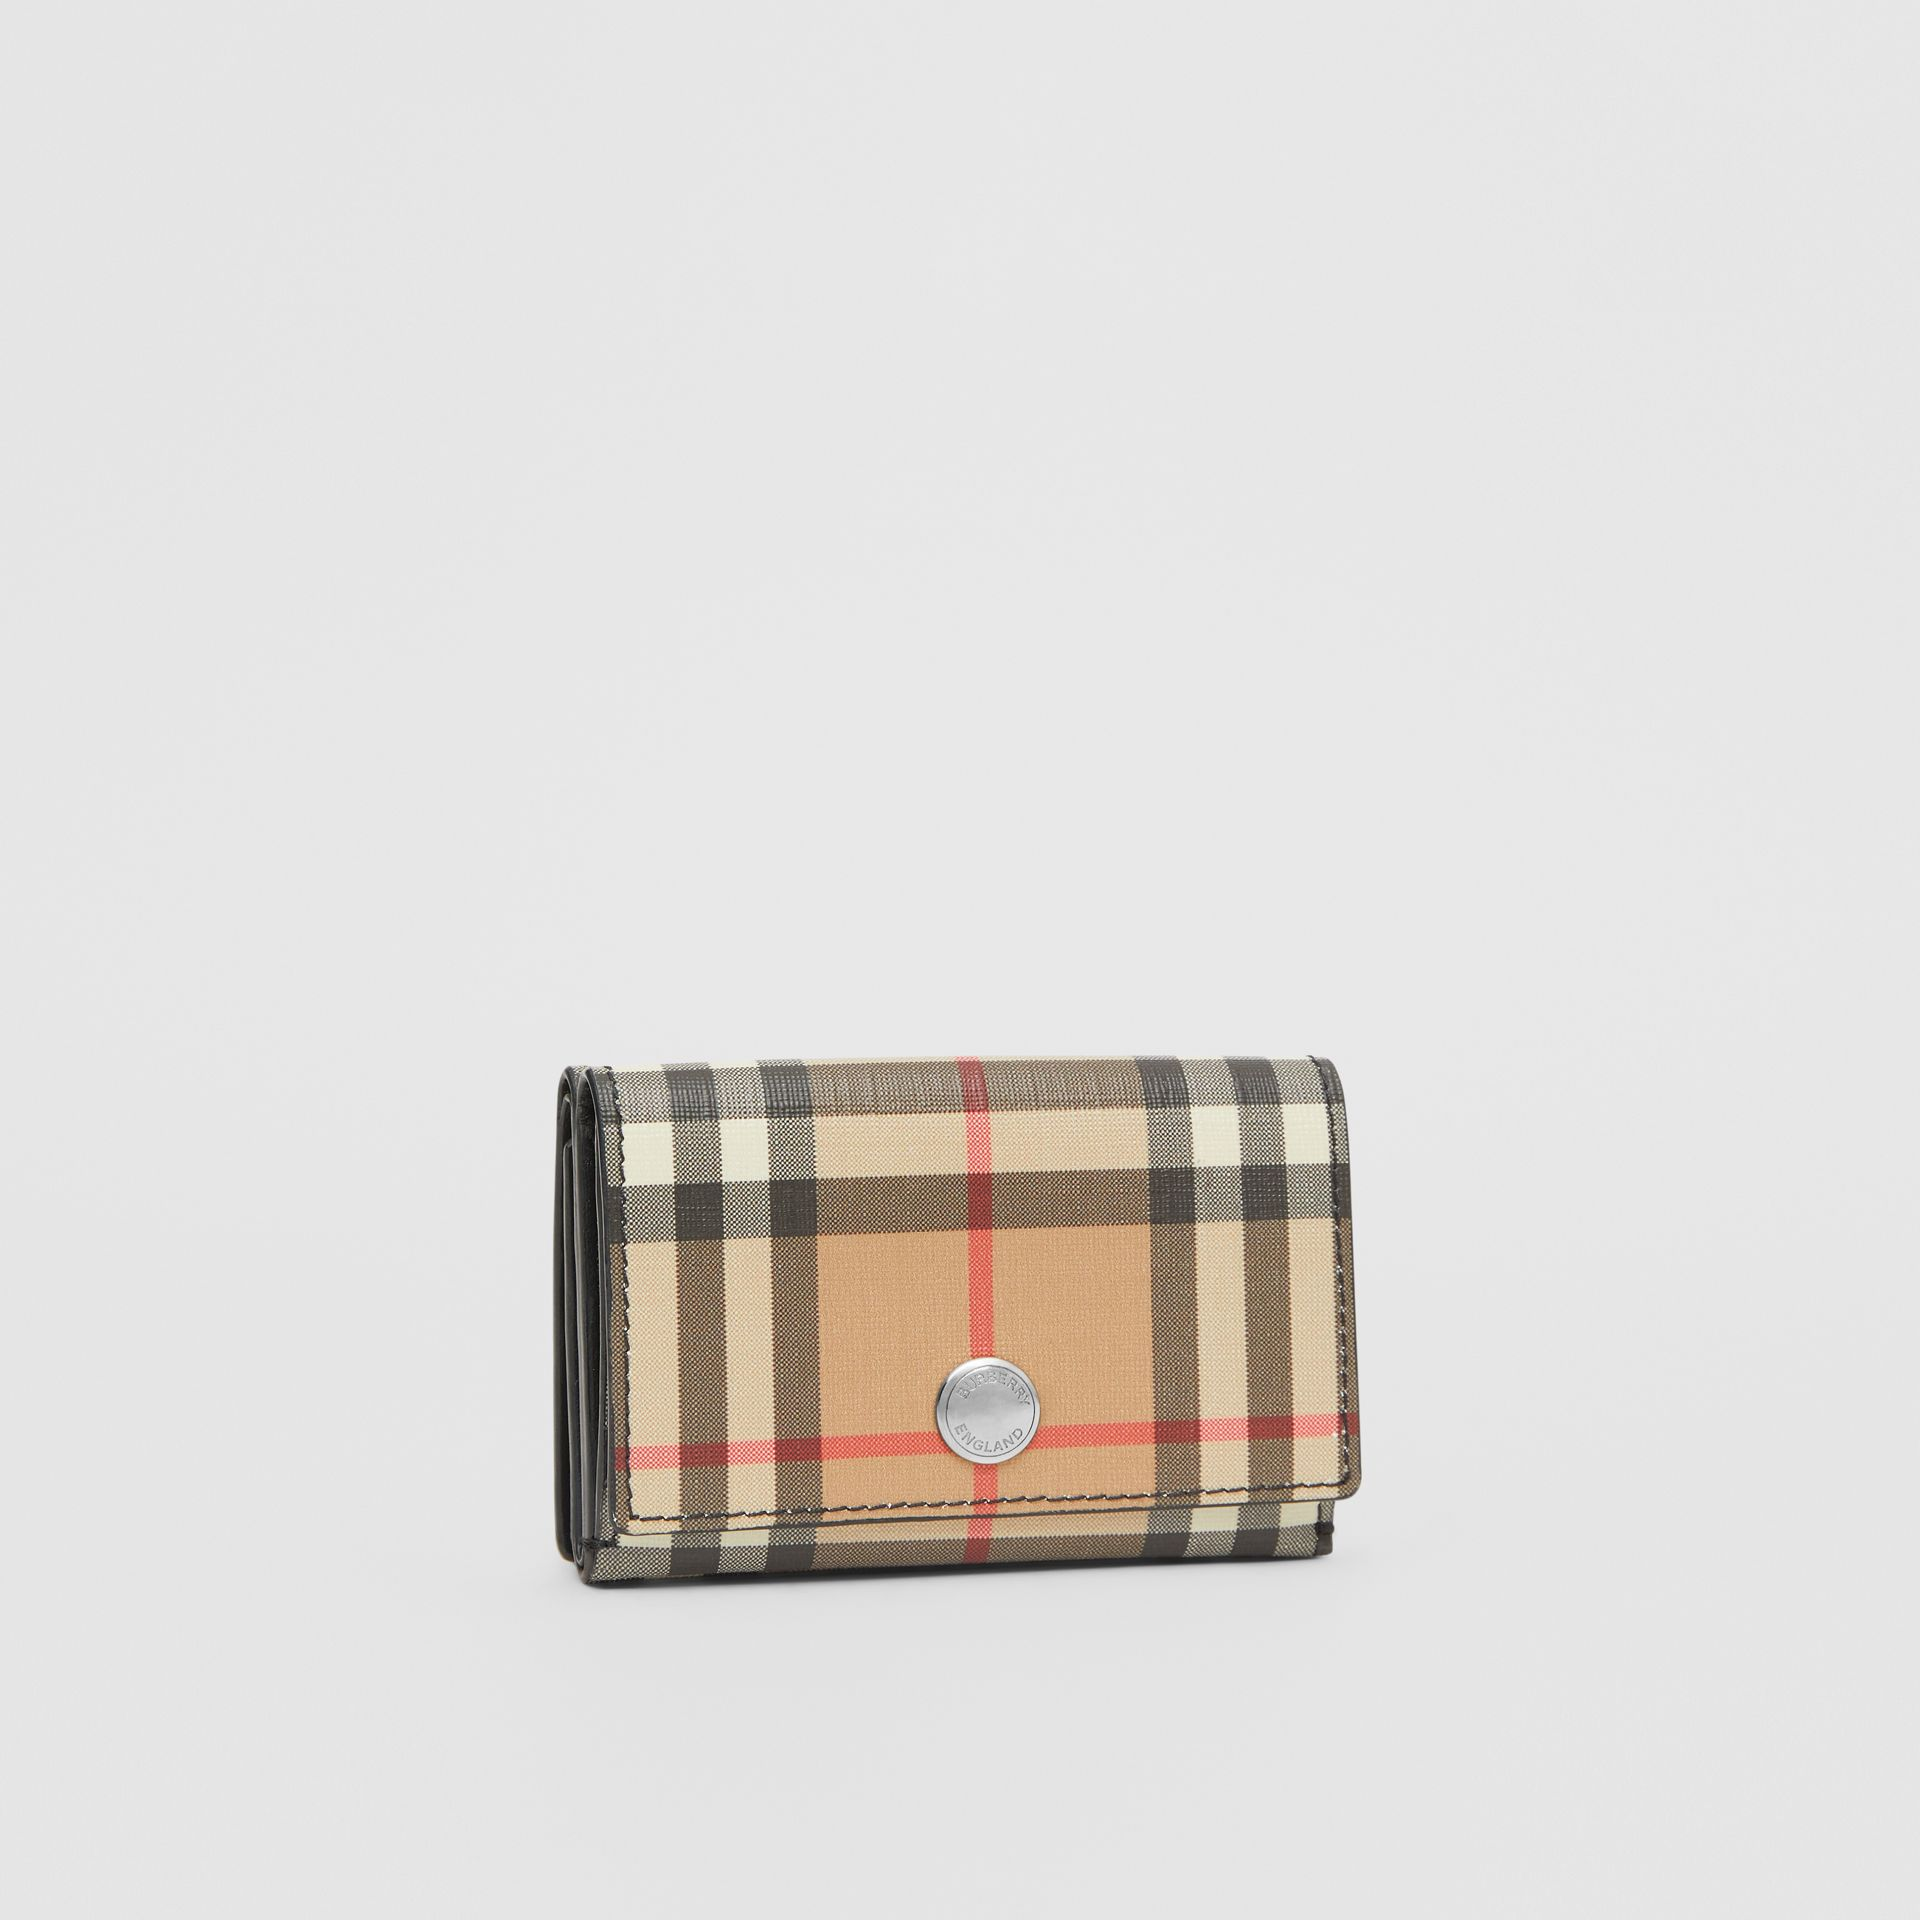 Small Vintage Check E-canvas Folding Wallet in Black - Women | Burberry Australia - gallery image 3